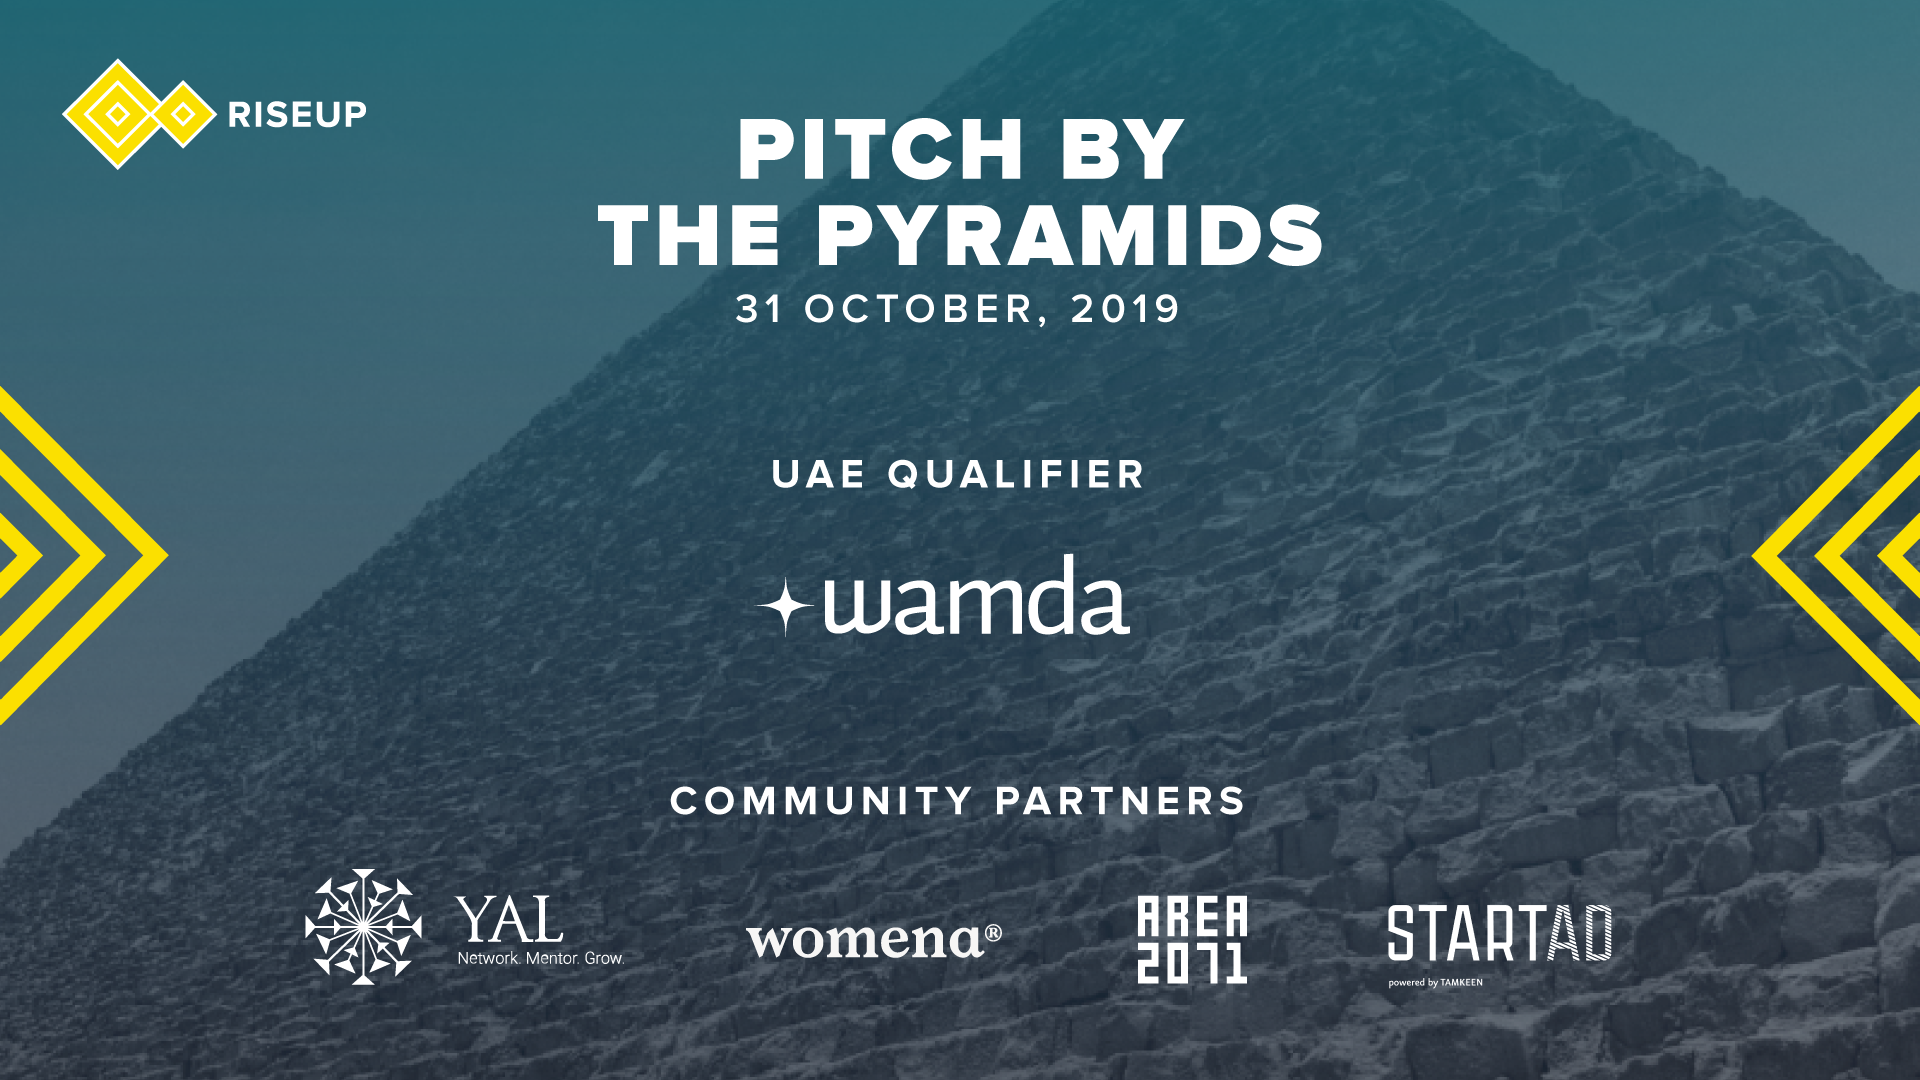 [Register to attend] Pitch by the Pyramids - UAE local Qualifier, Oct 31